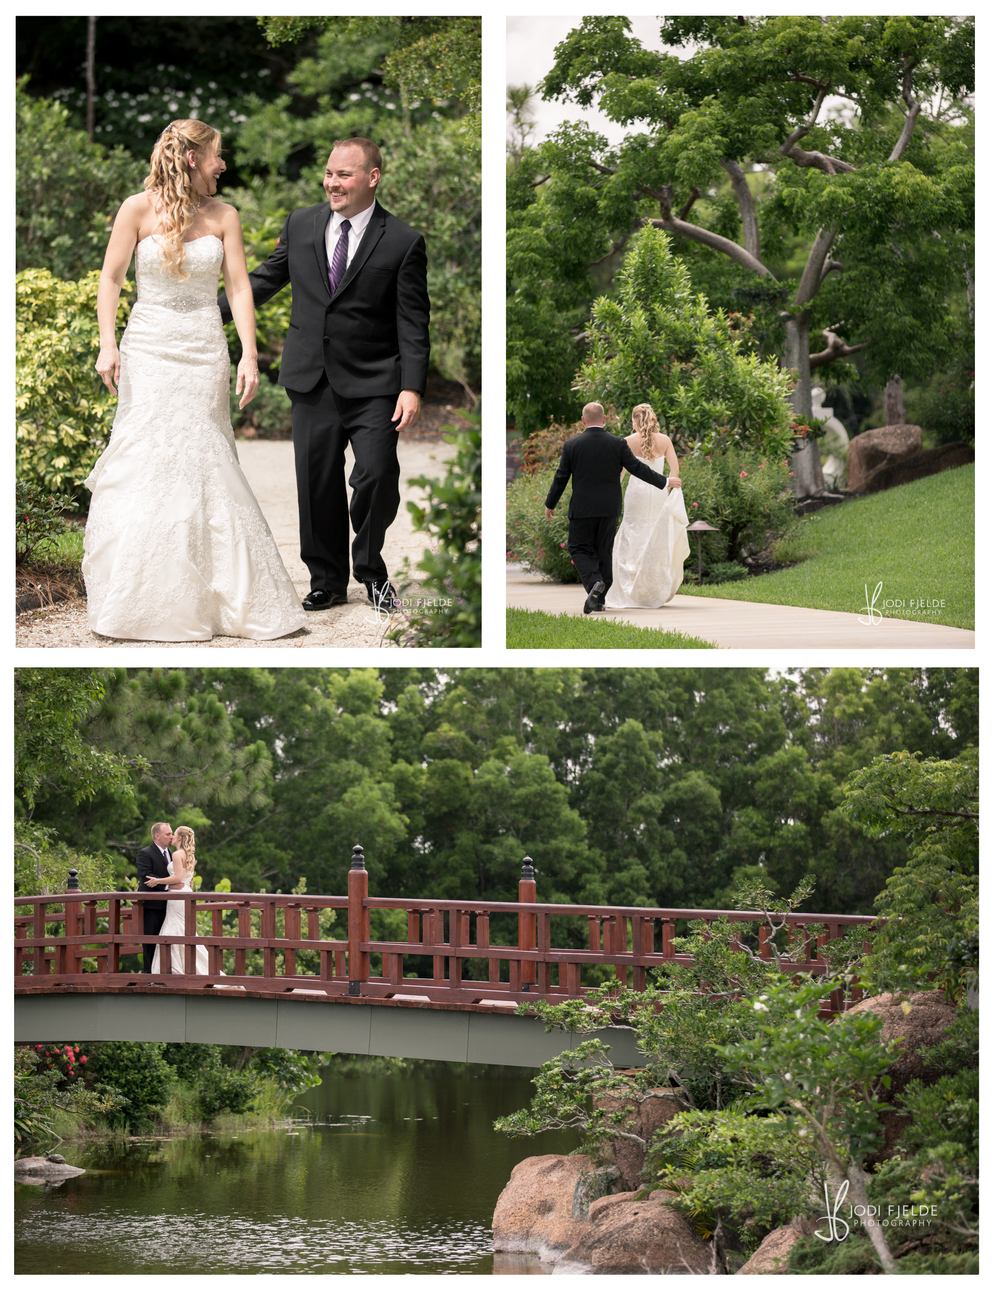 Morikami_Delray_Beach_Golf_Club_Wedding_Jenna & Brian 12.jpg